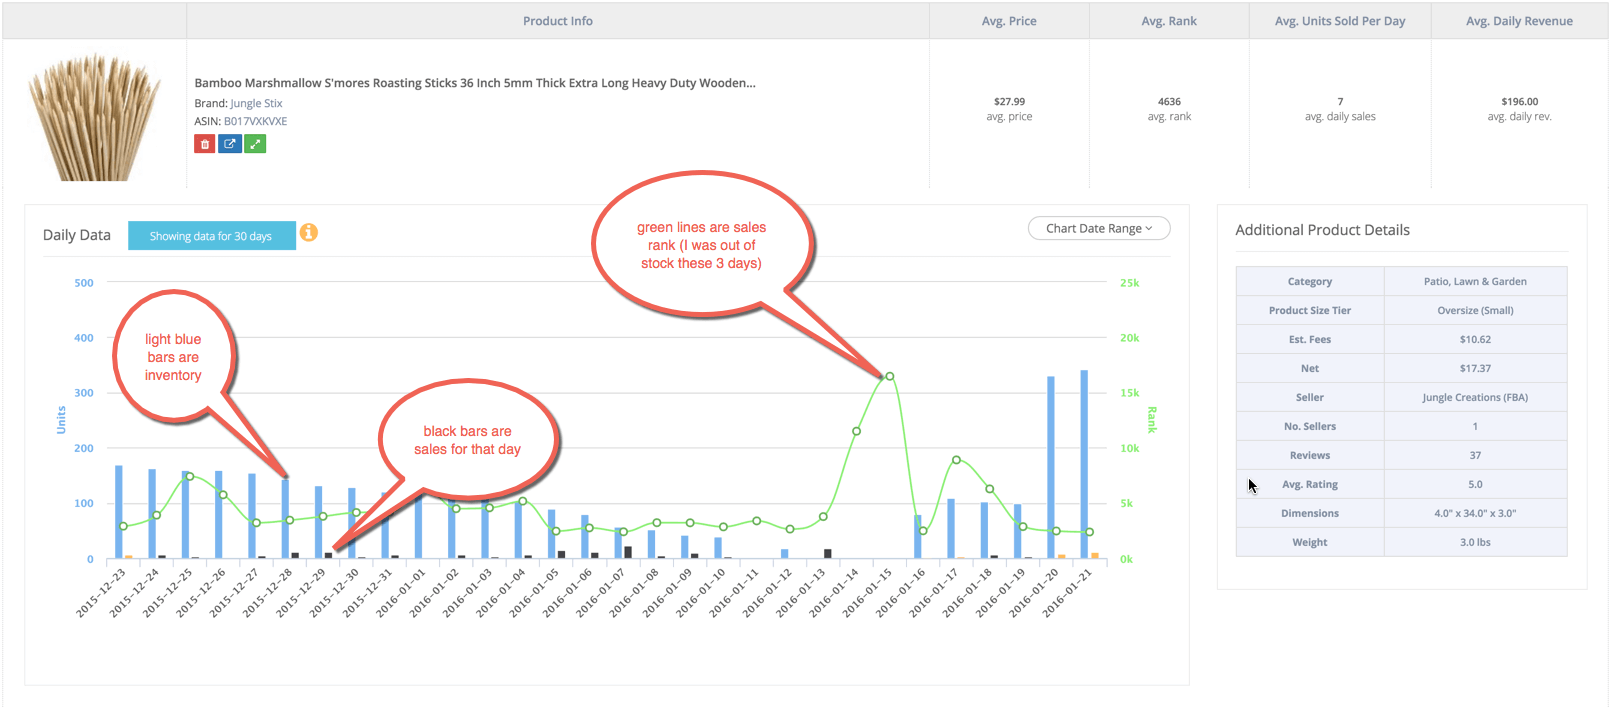 track actual amazon sales data with jungle scout's product tracker